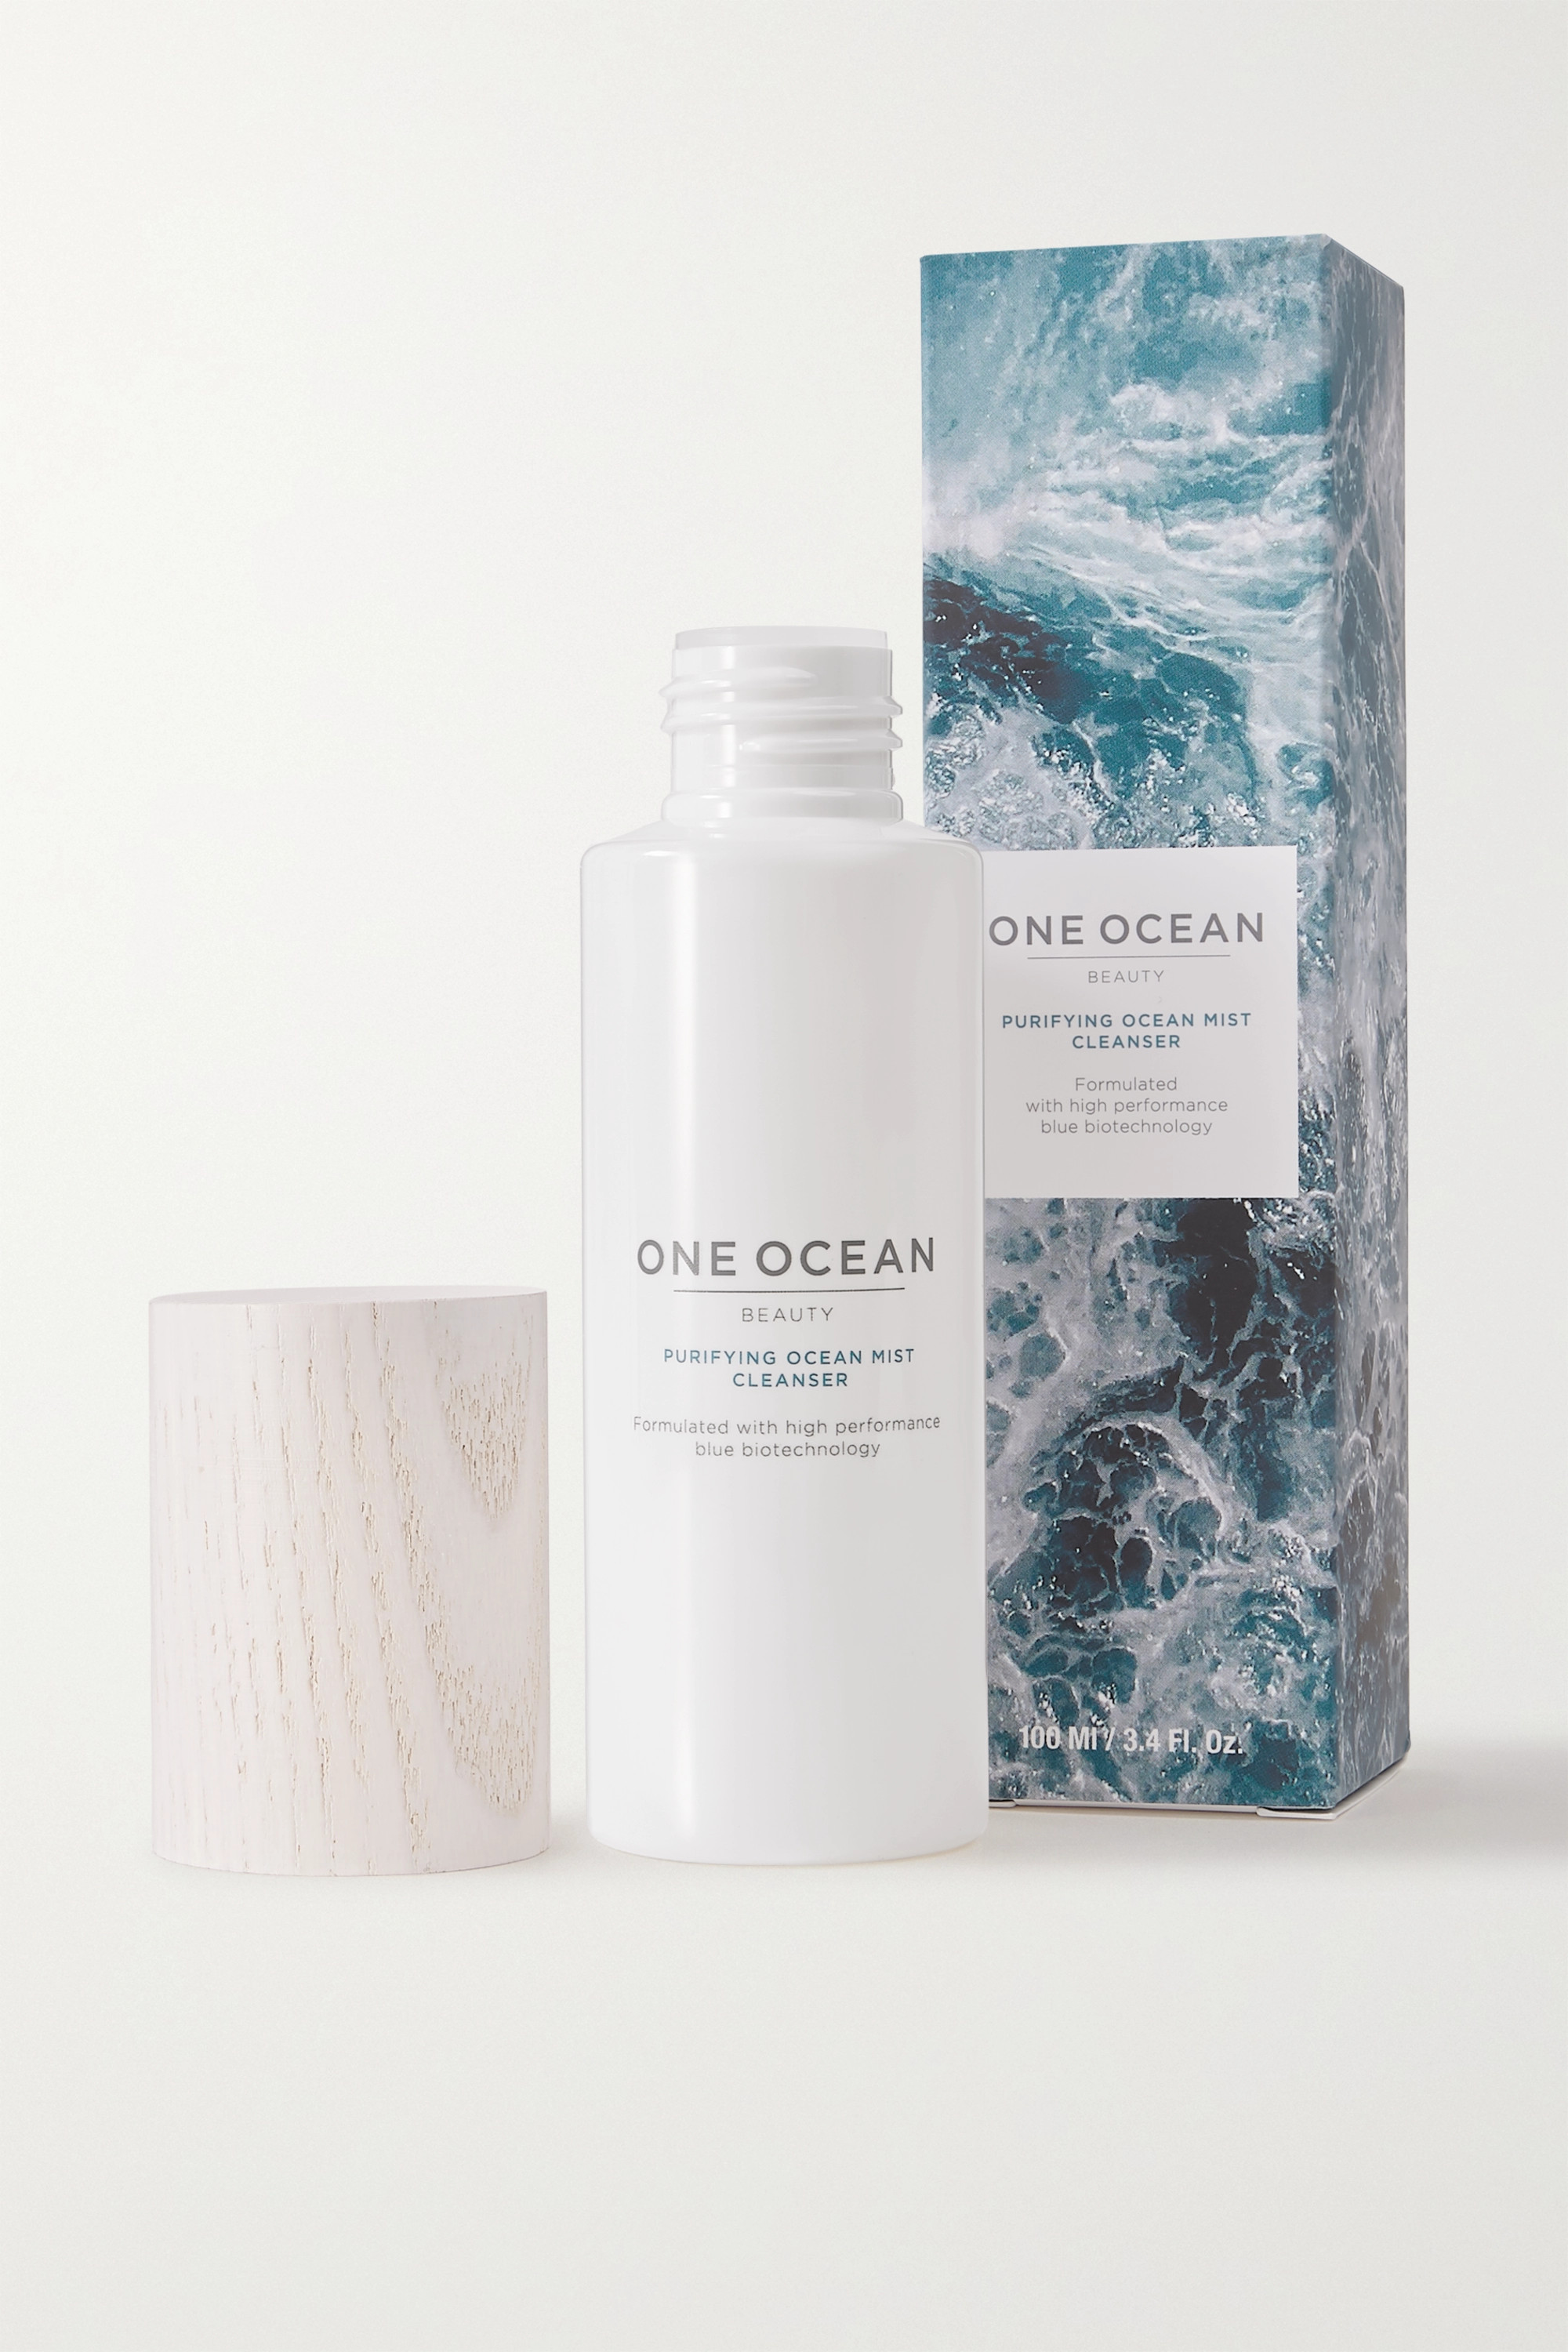 One Ocean Beauty Purifying Ocean Mist Cleanser, 100ml